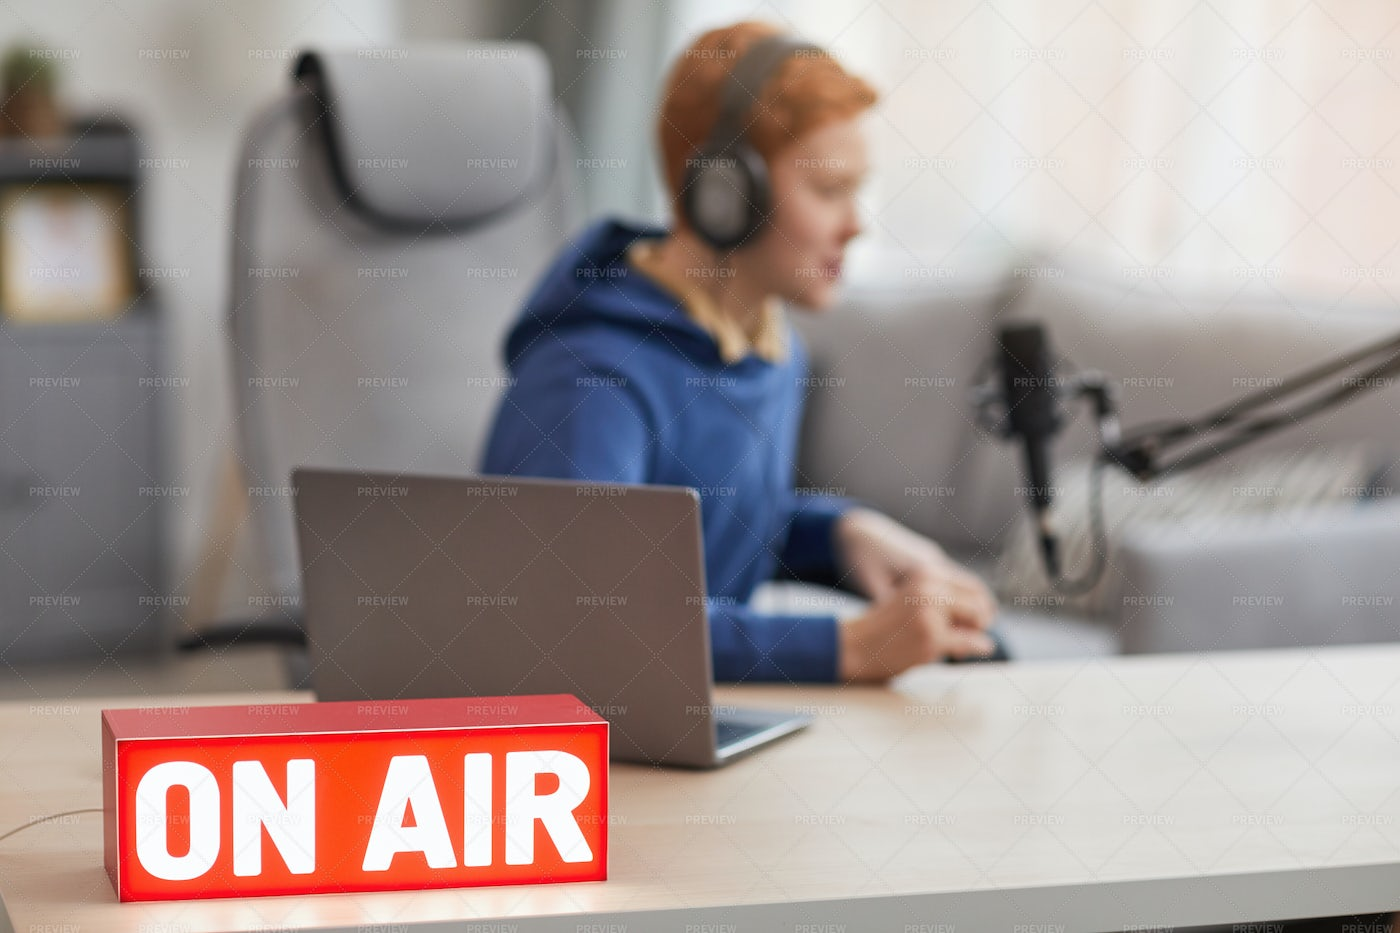 On Air Sign In Home Studio: Stock Photos